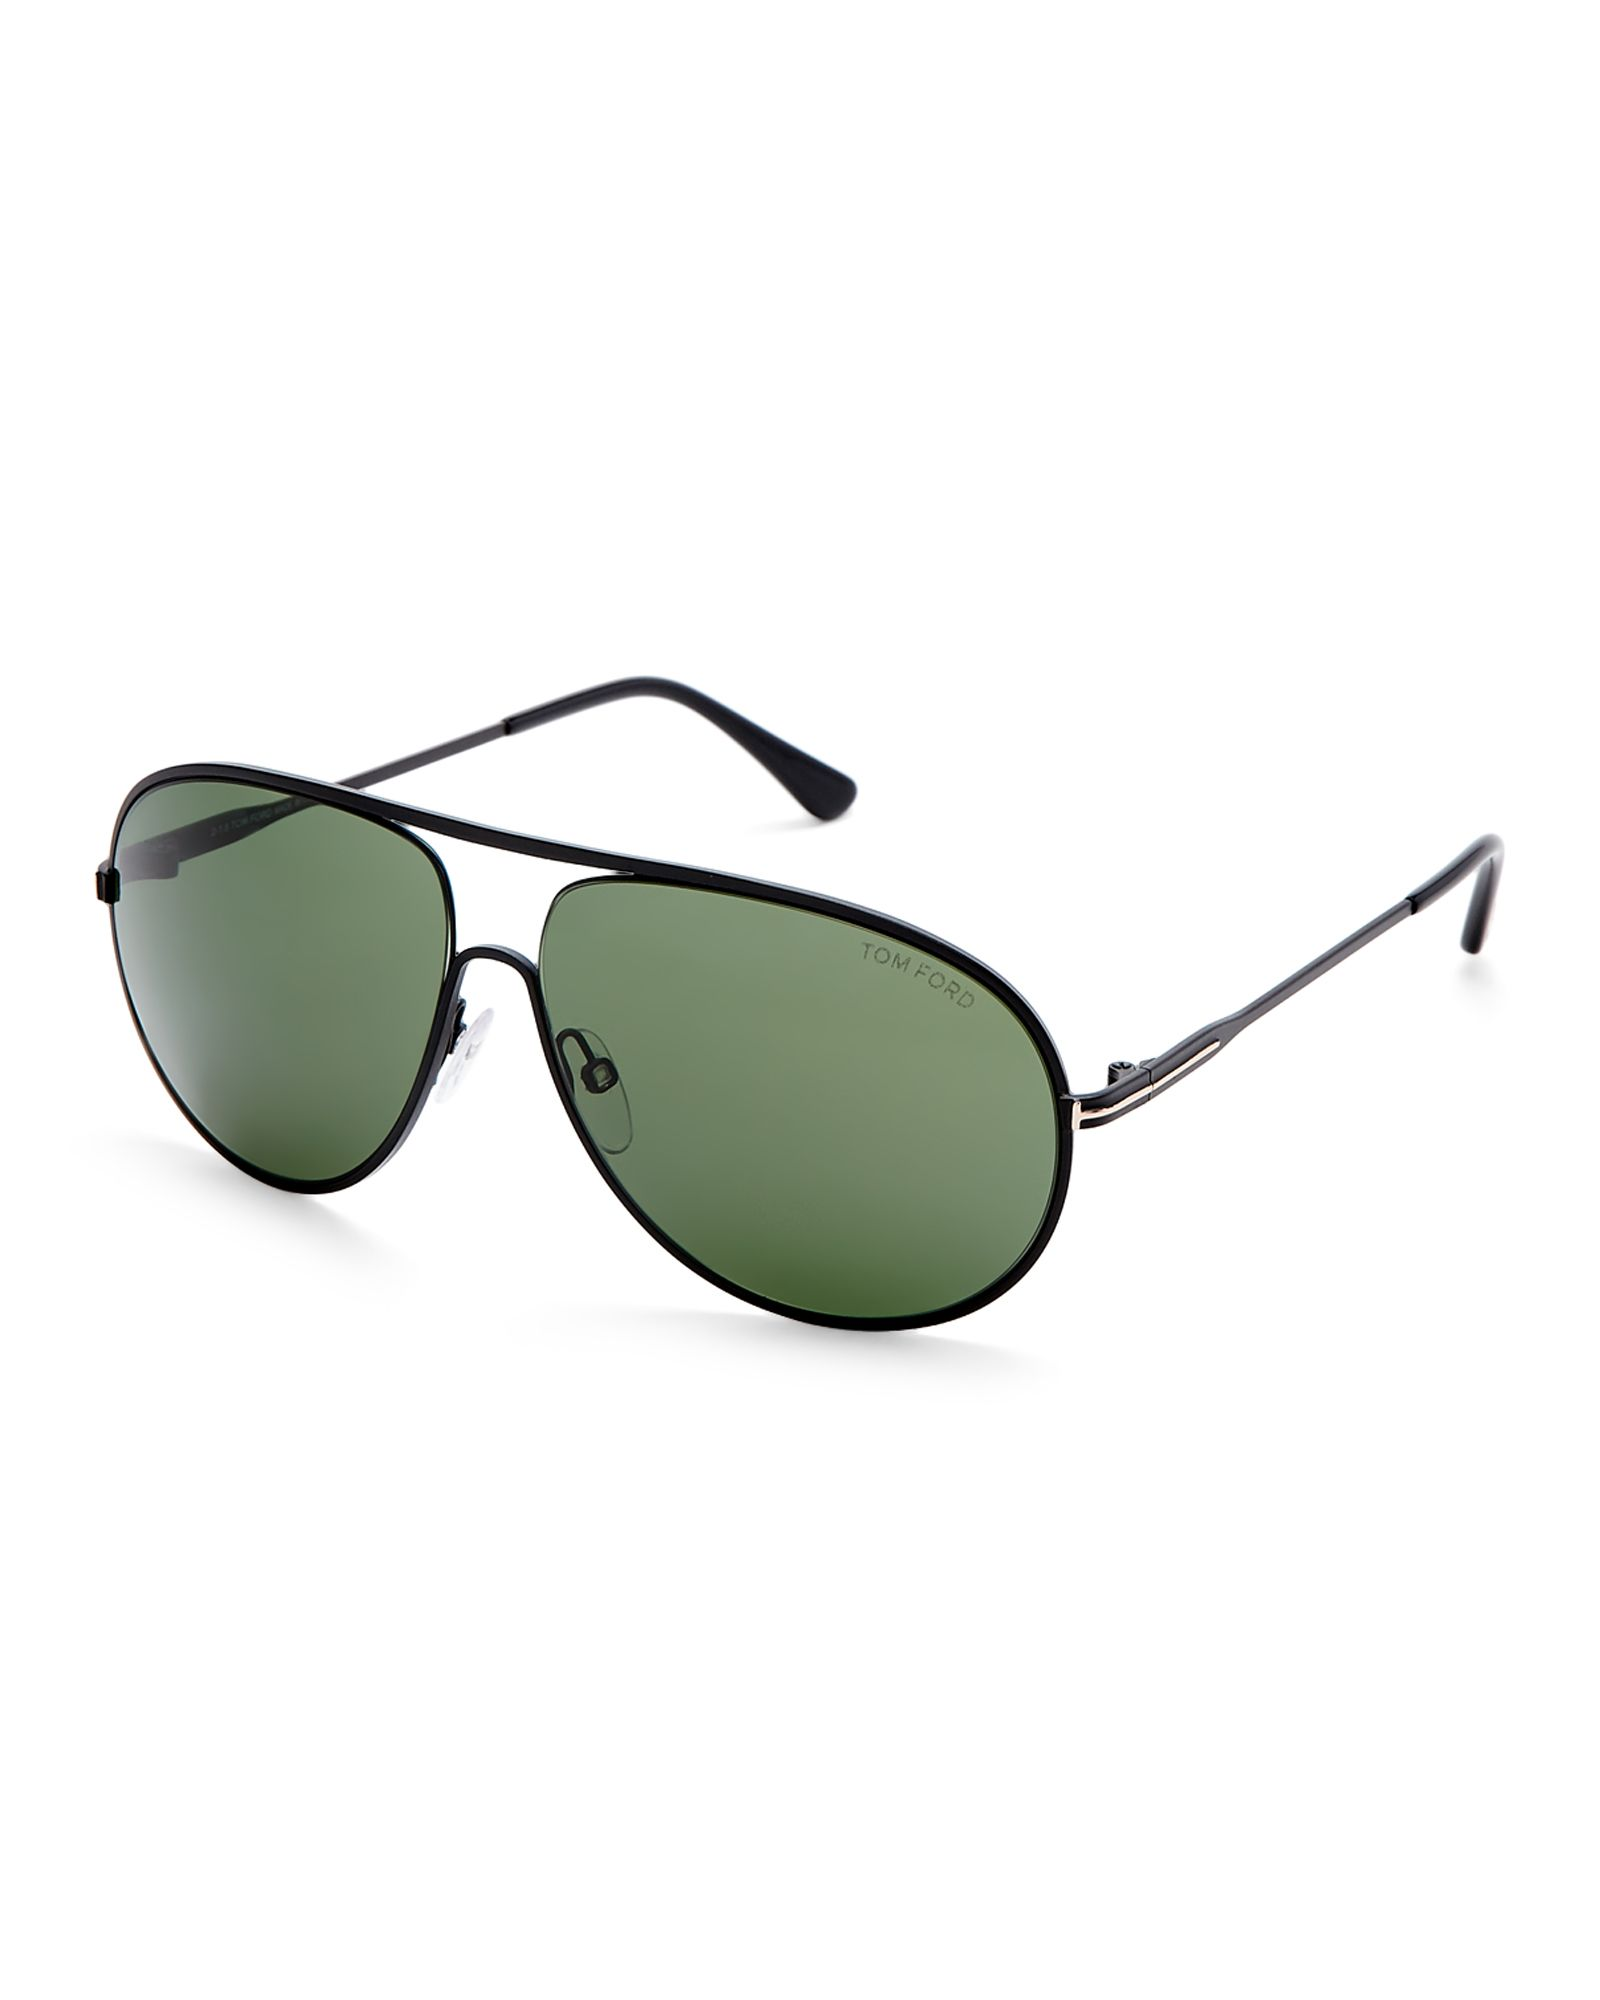 fdd1a3d777f4 Tom Ford TF450 Black Cliff Aviator Sunglasses Tom Ford